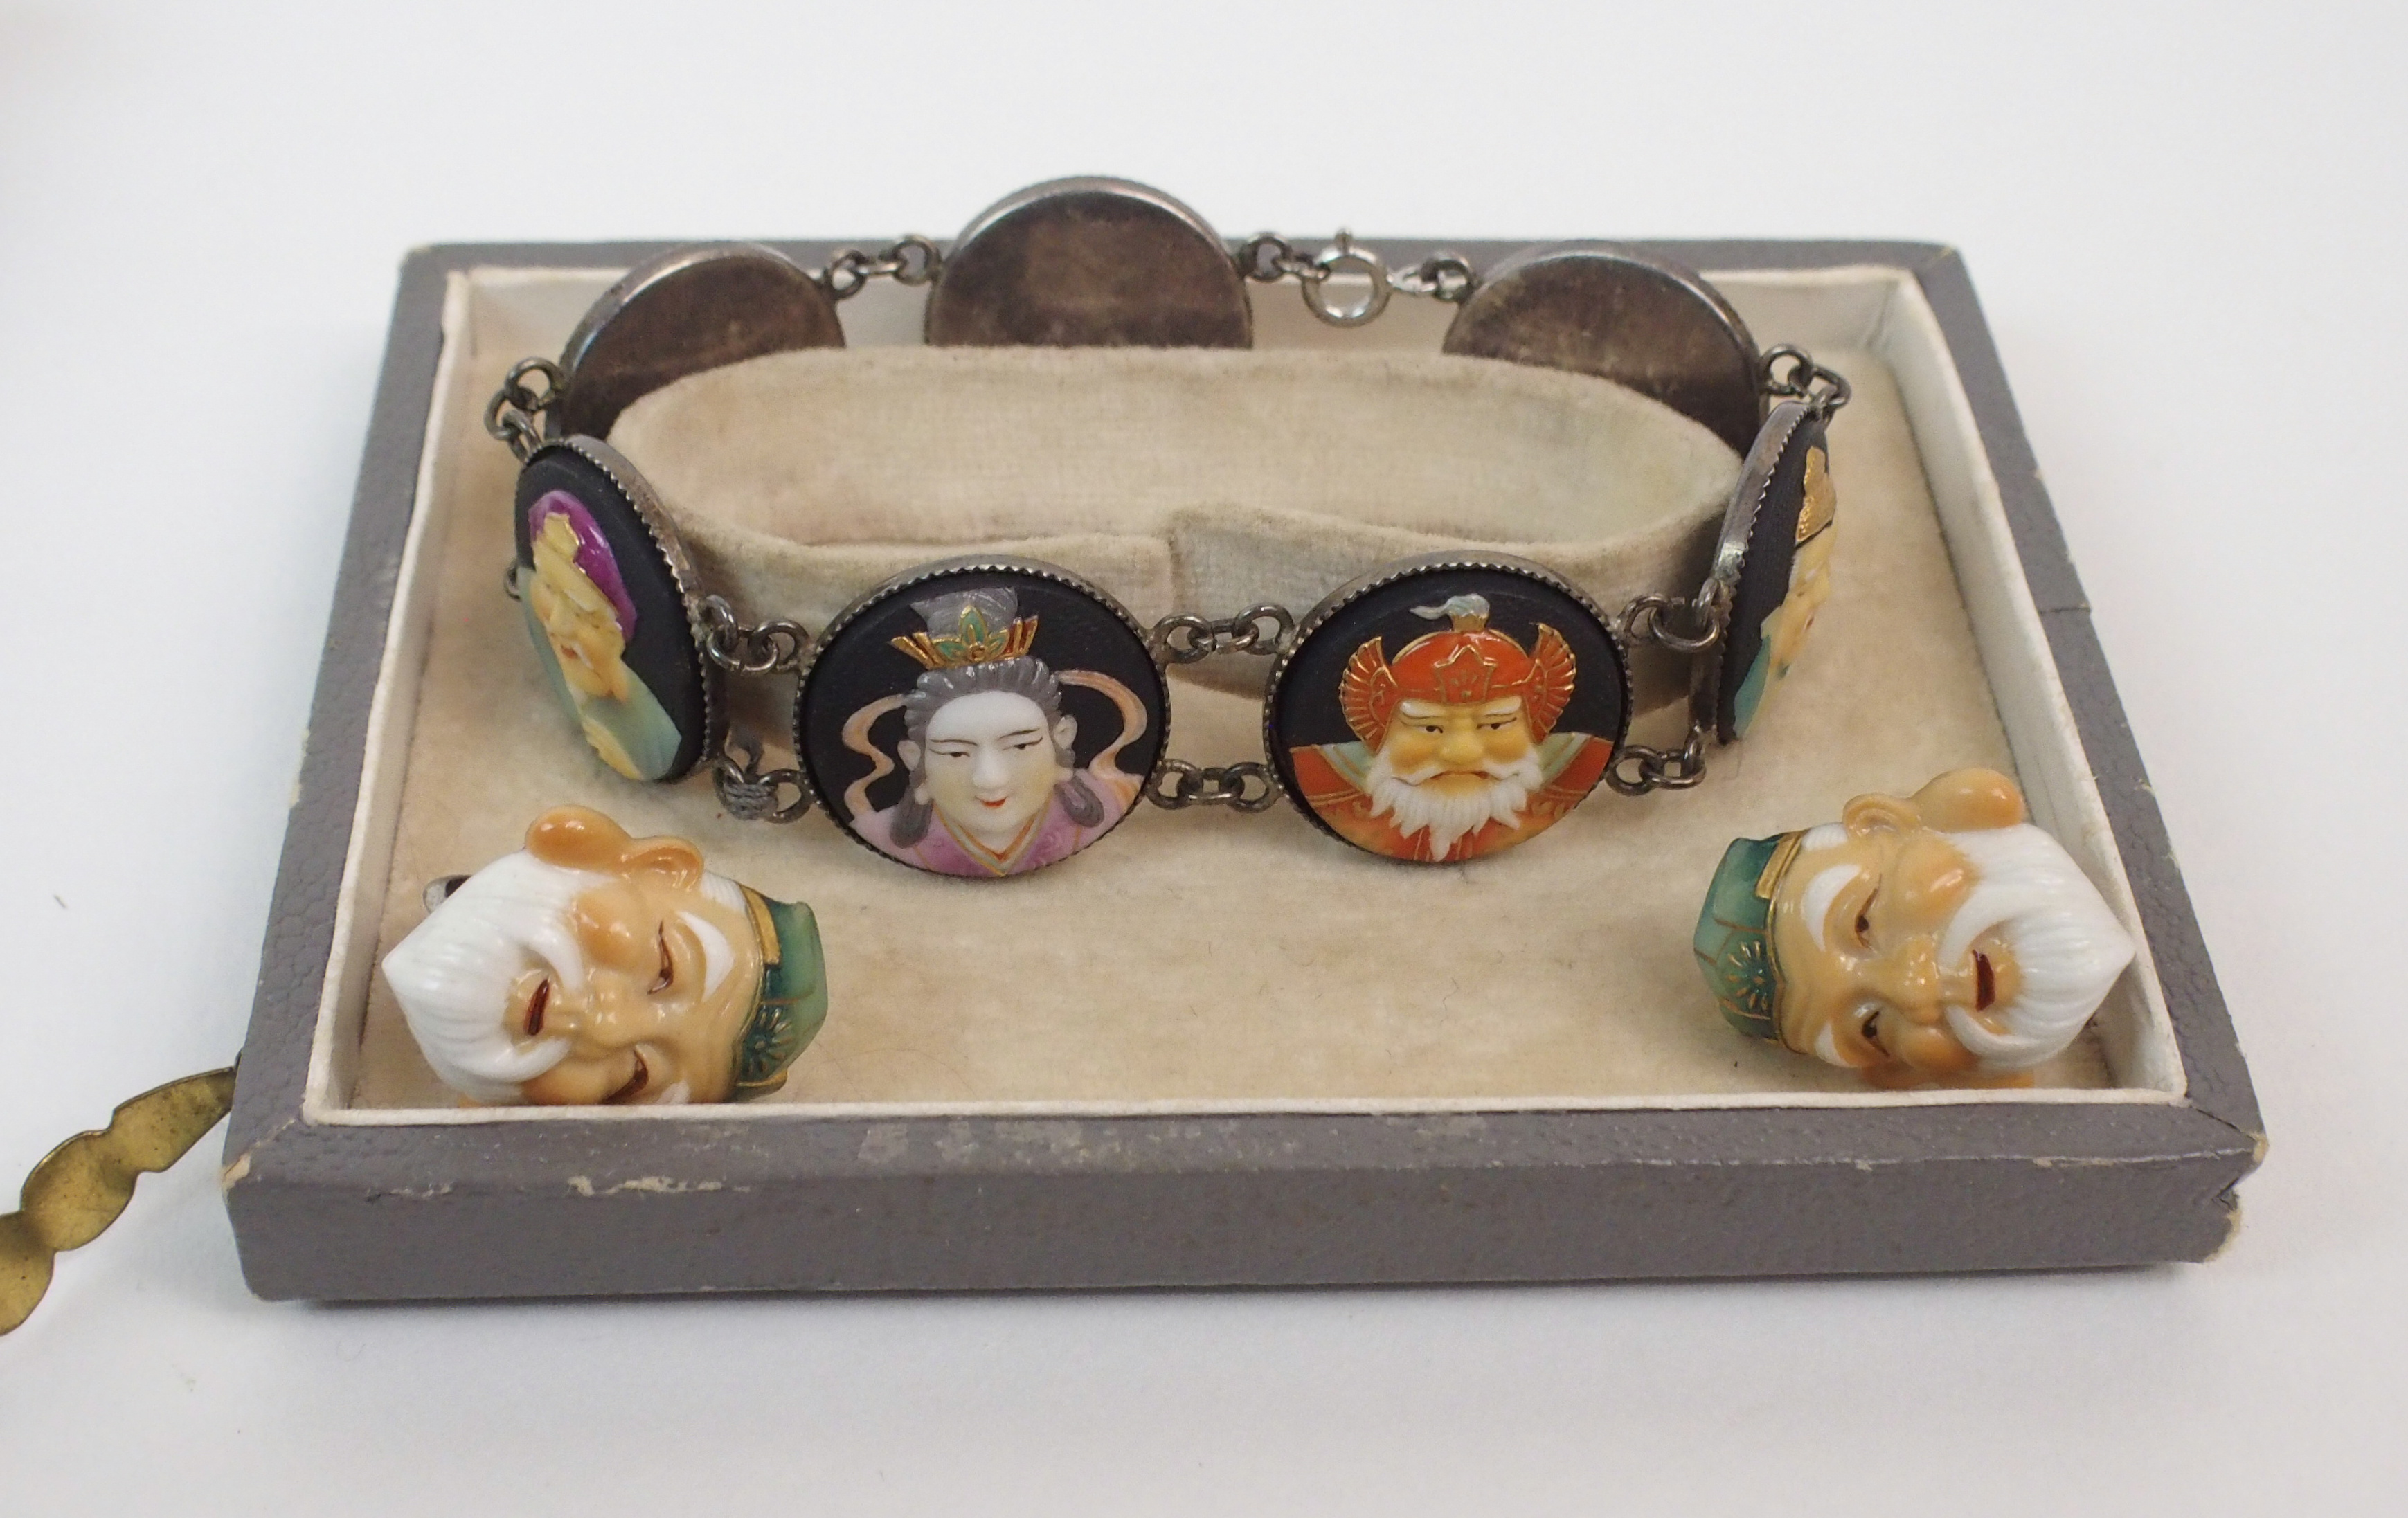 Lot 59 - A TOSHIKANE BRACELET AND EARRINGS with seven Gods of Luck in ceramic medallions on white metal